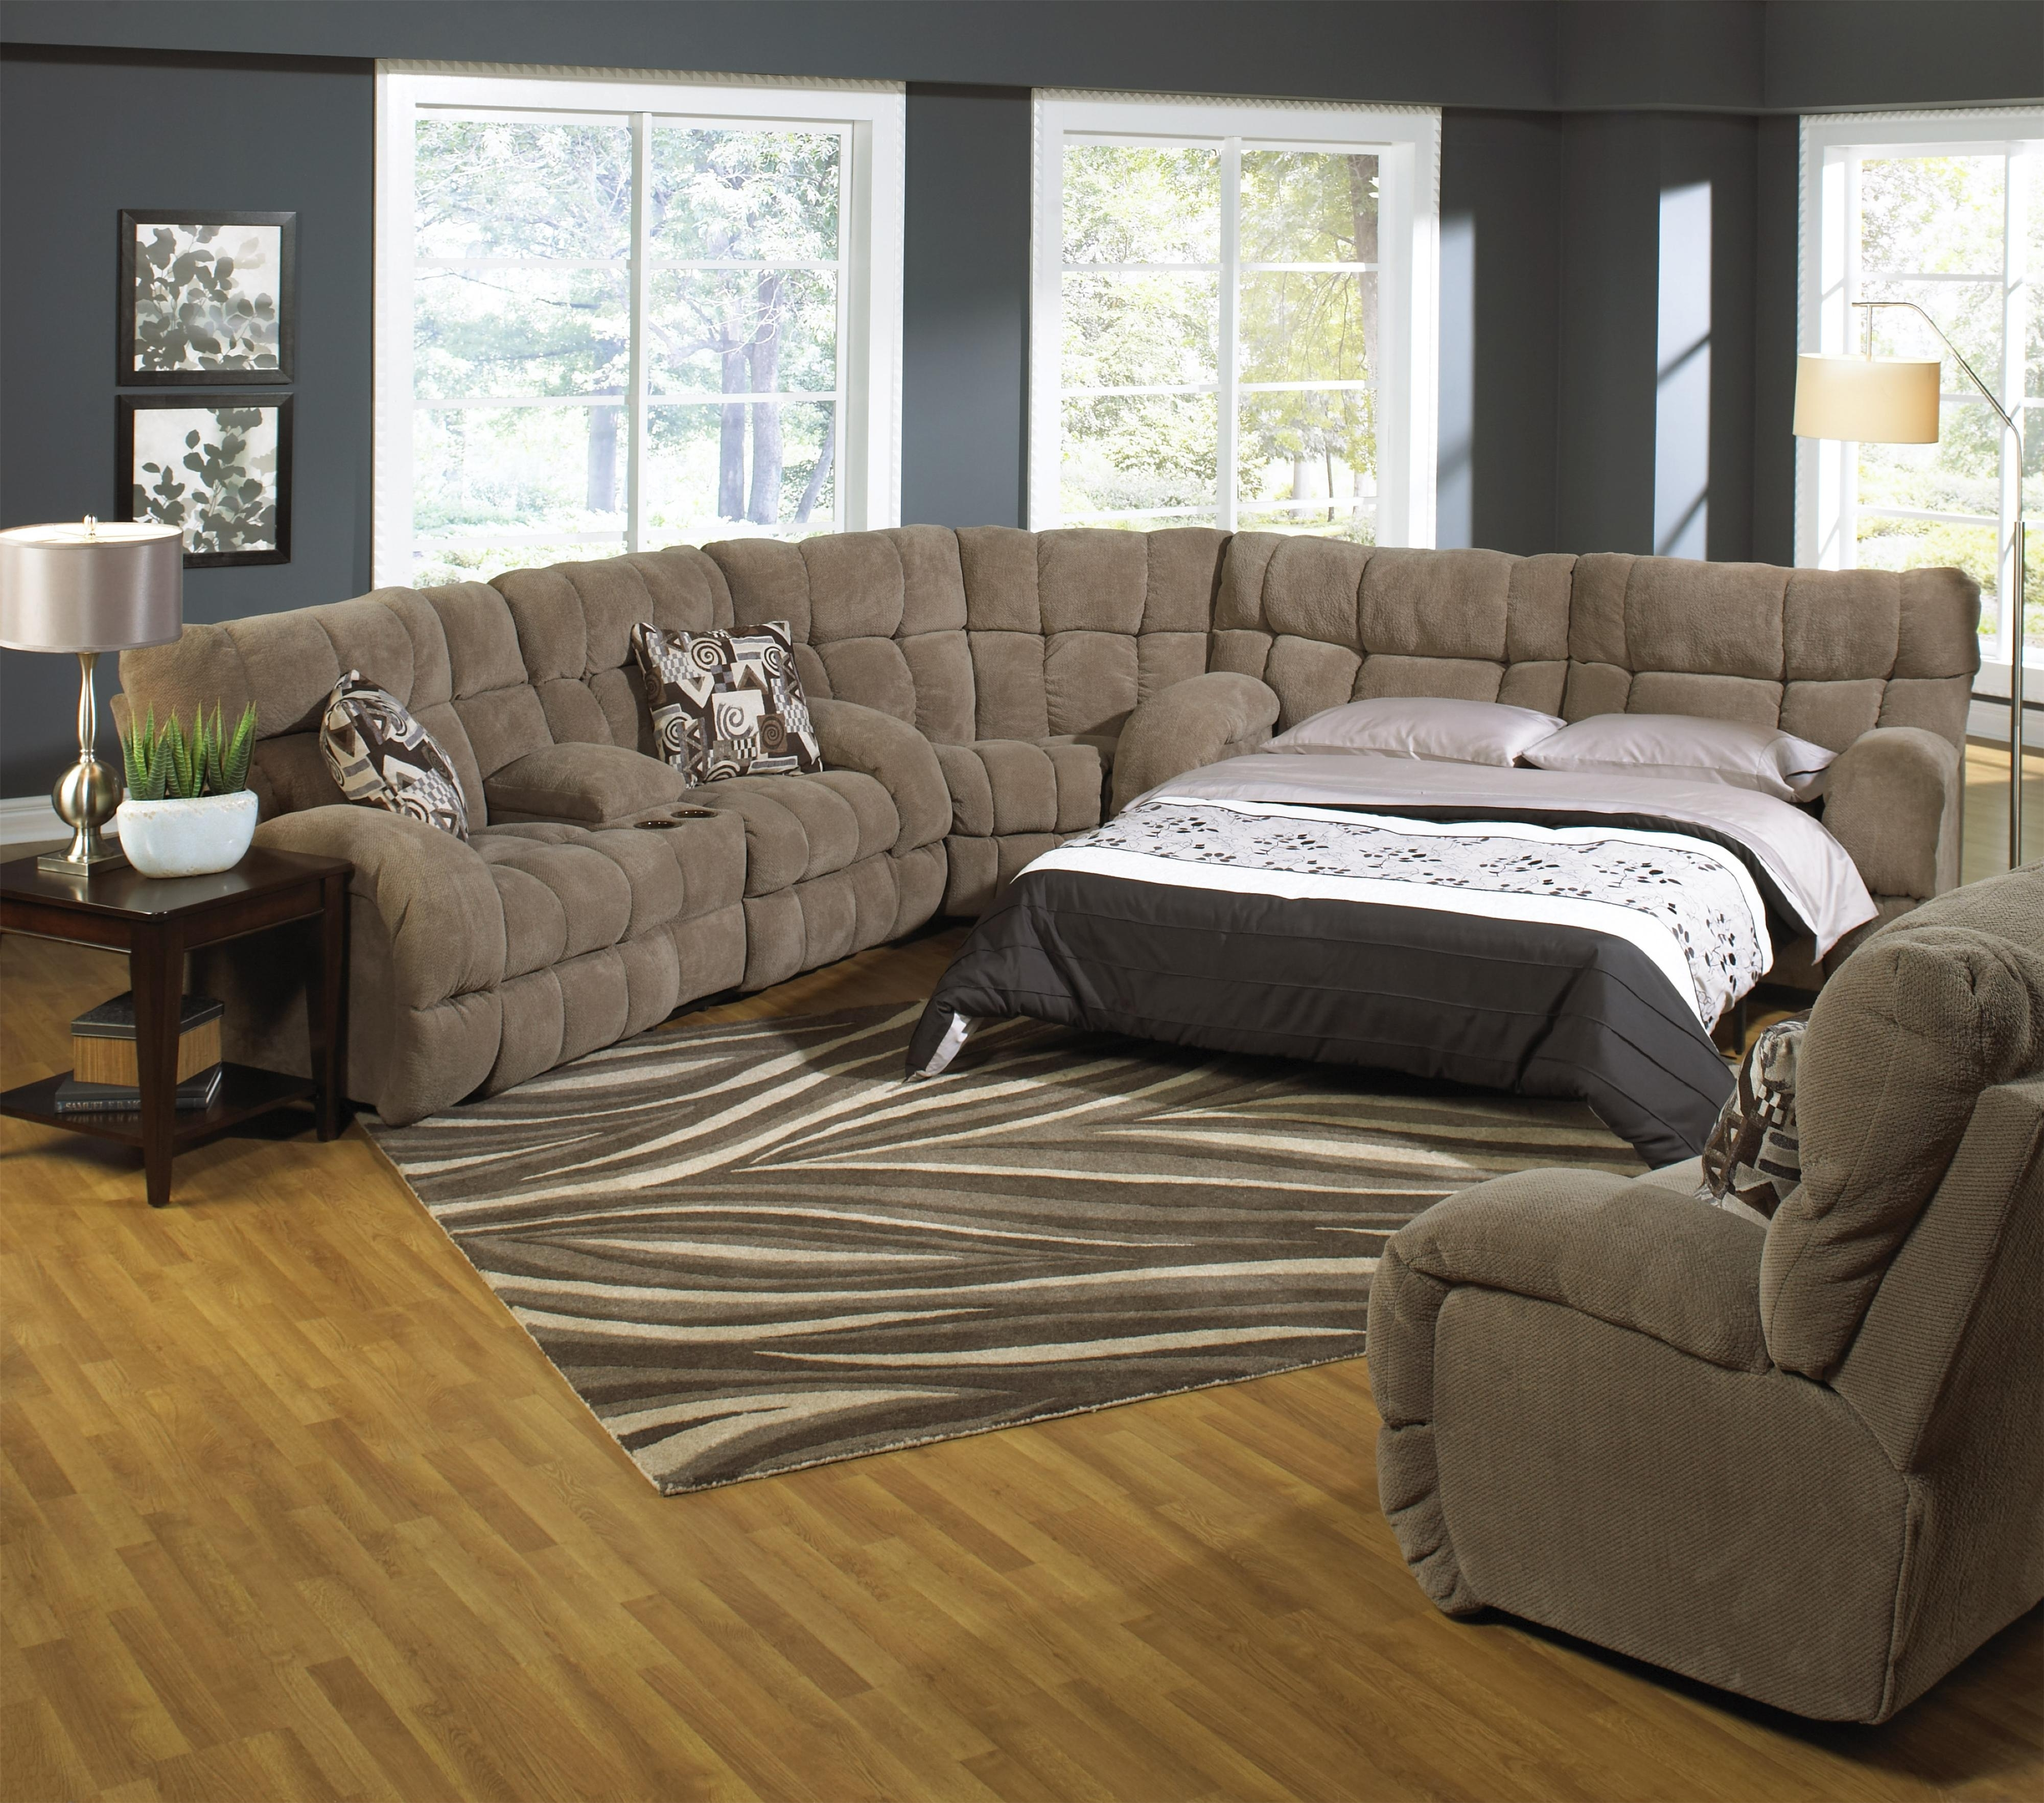 Sofa : Stunning Sectional Sofa Queen Bed Singletary Sleeper with Sectional Sofas With Queen Size Sleeper (Image 9 of 10)